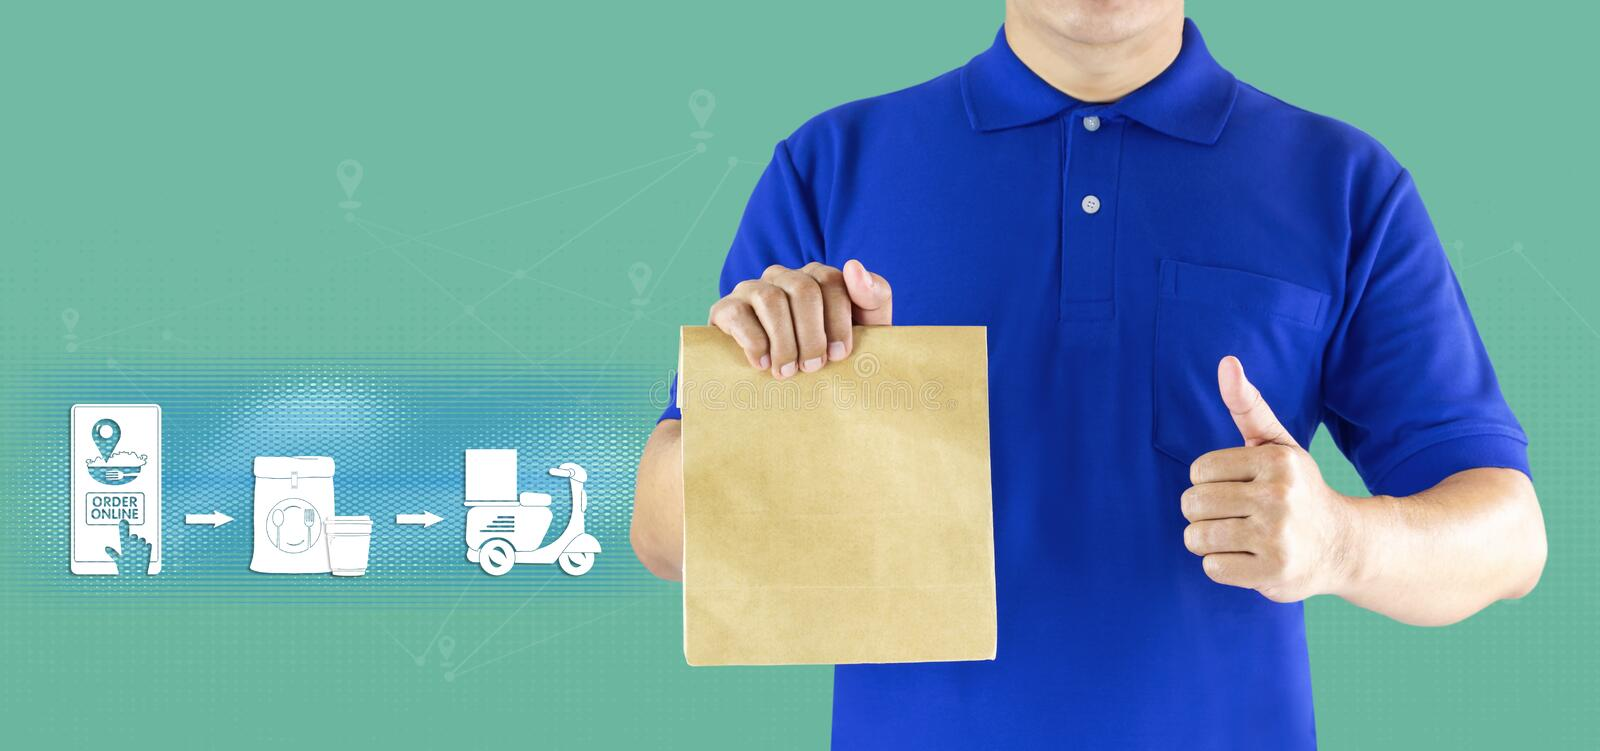 Delivery man hand holding paper bag in blue uniform and icon media for delivering package order online fast food delivery service. By motorcycle or express royalty free stock image